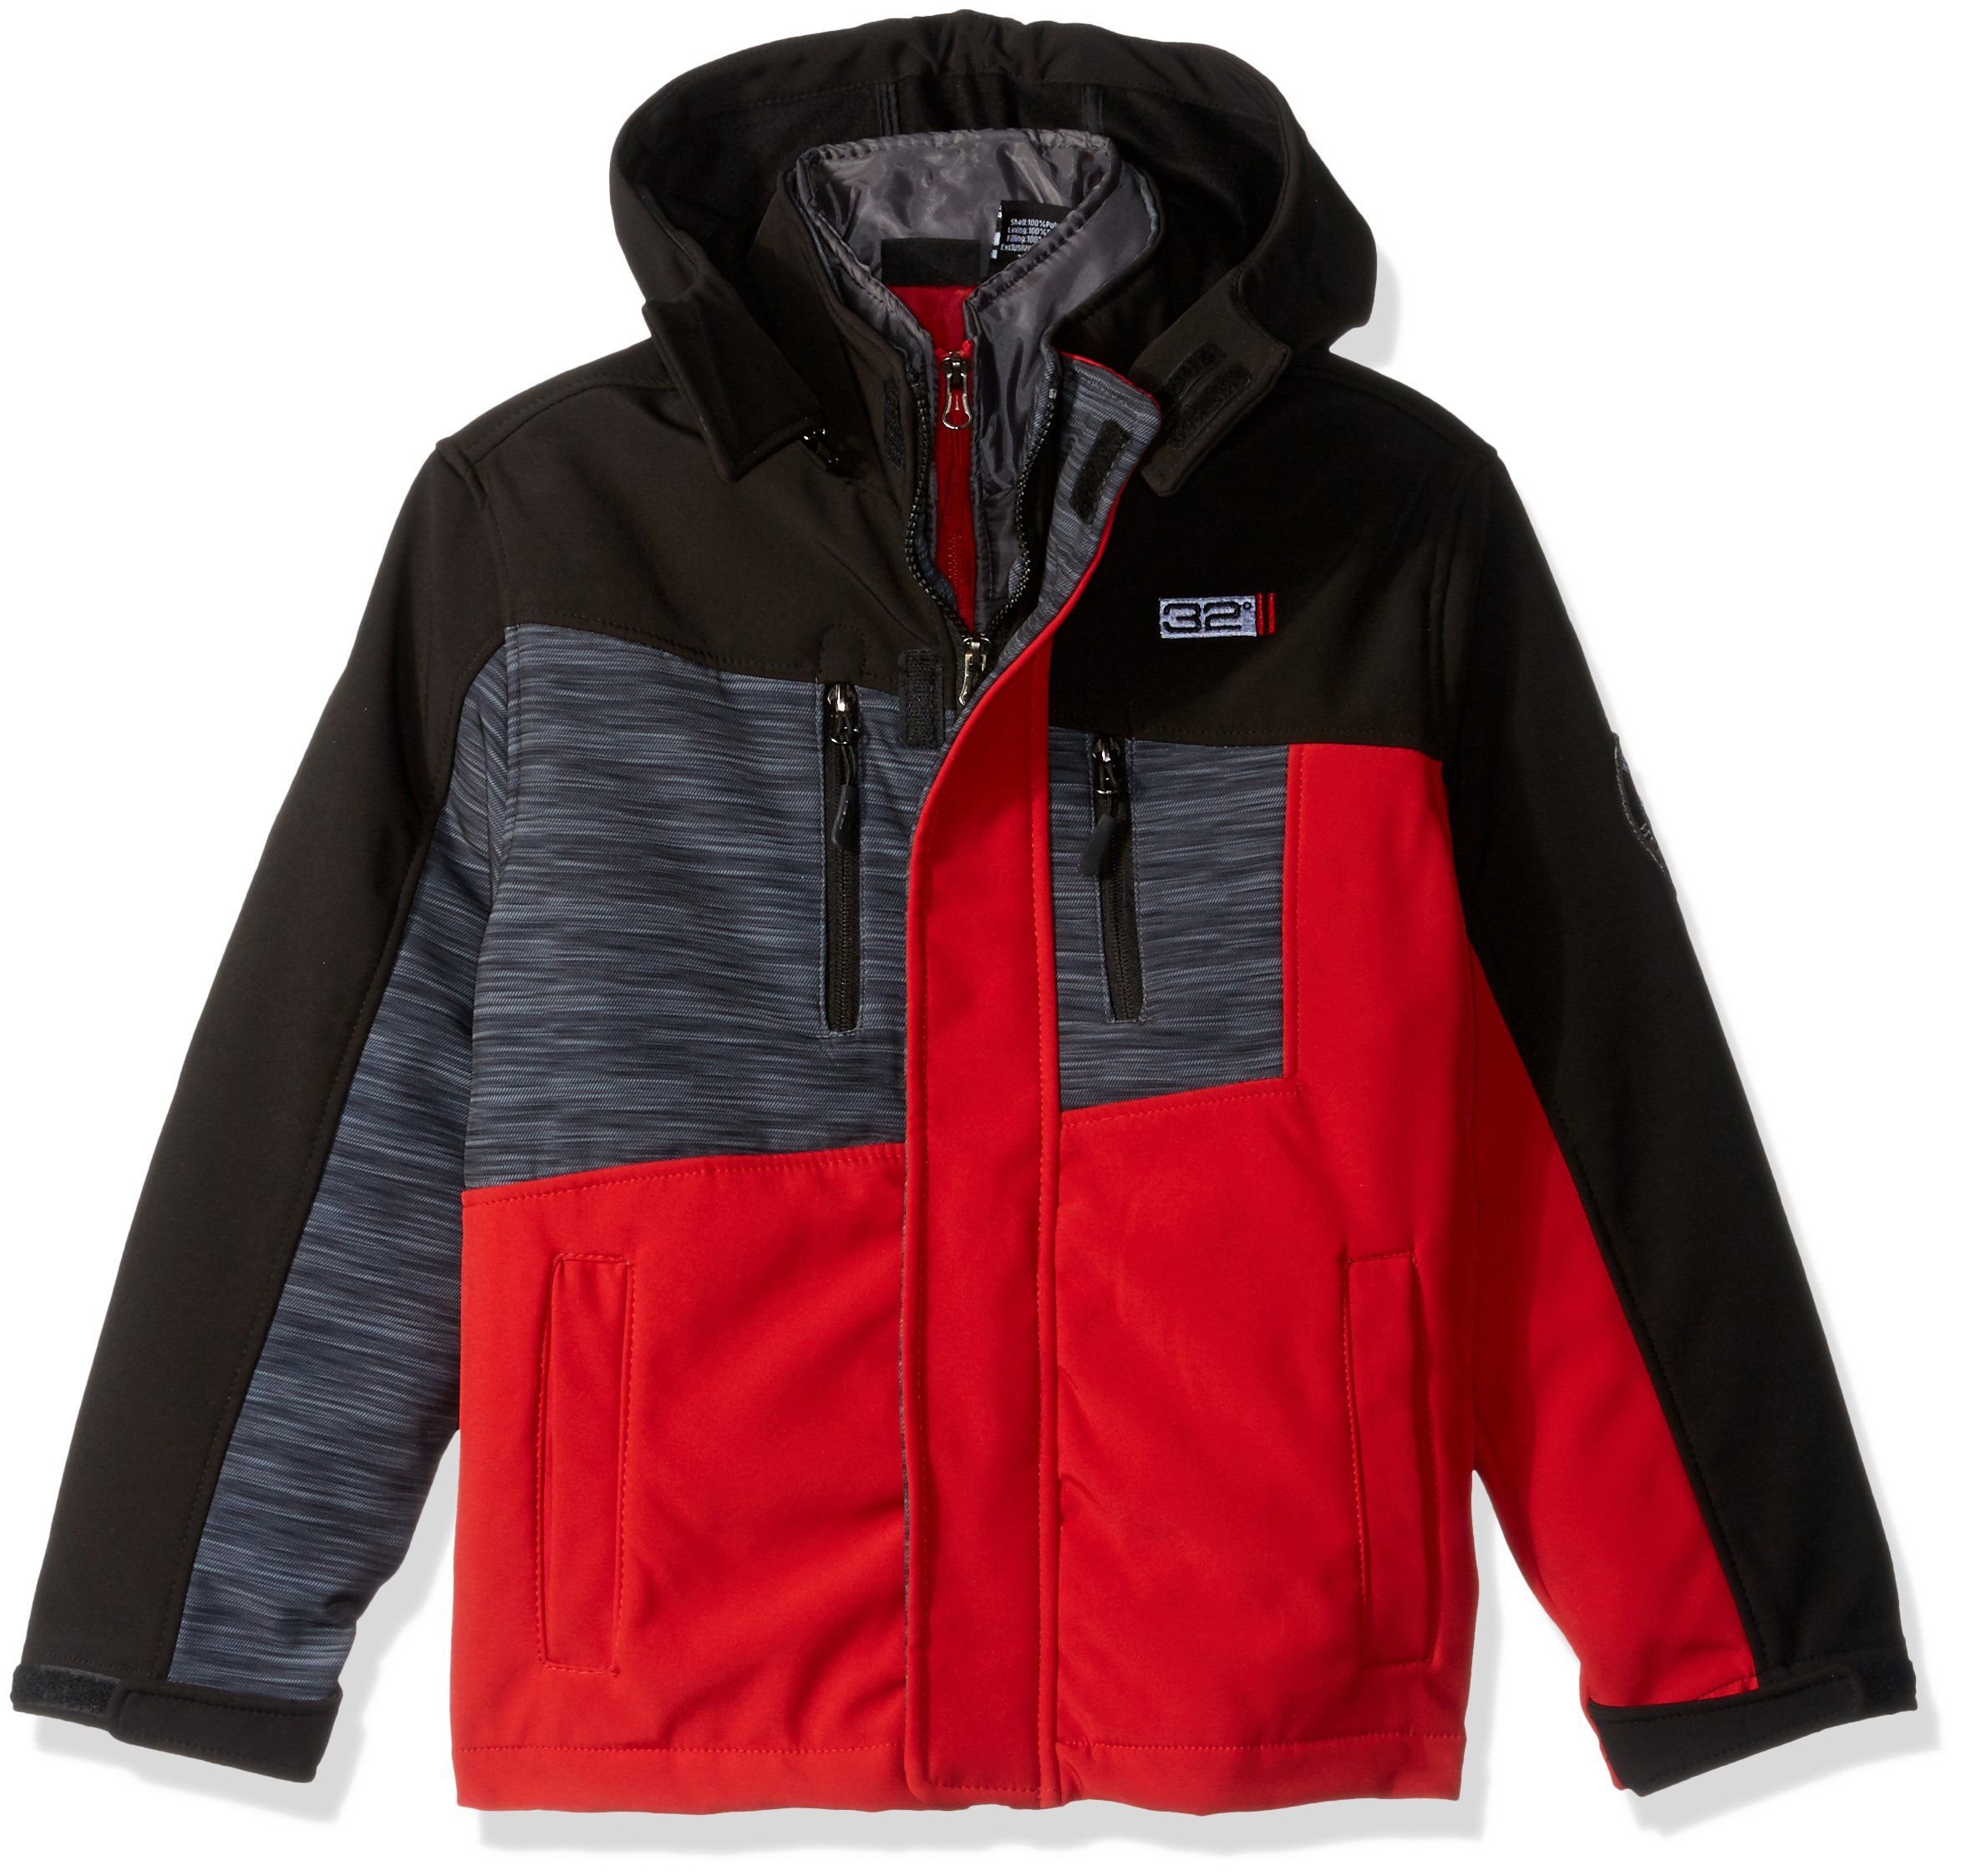 Weatherproof Little Boys 32 Degrees Outerwear Jacket More Styles Available Red Black Logo Print Black A 5 6 Wind And Outerwear Jackets Jackets Black Logo [ 2245 x 2347 Pixel ]